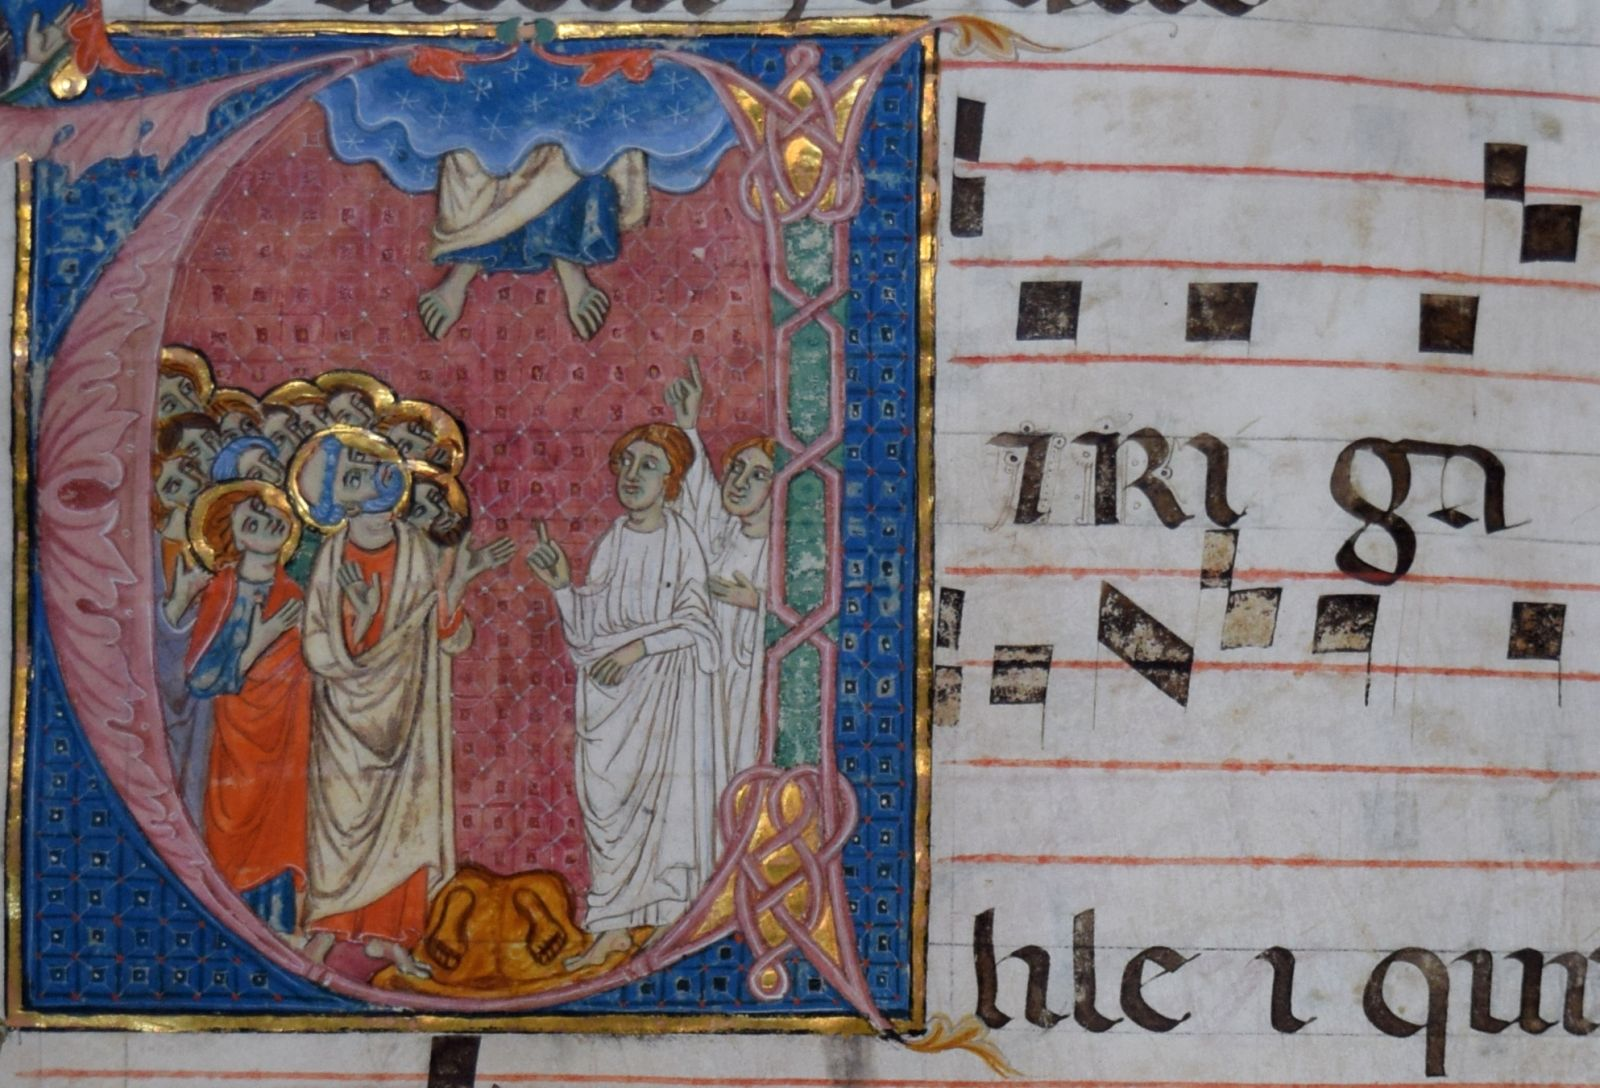 Illumination from a late 14th century choirbook. B-Bc 9287.